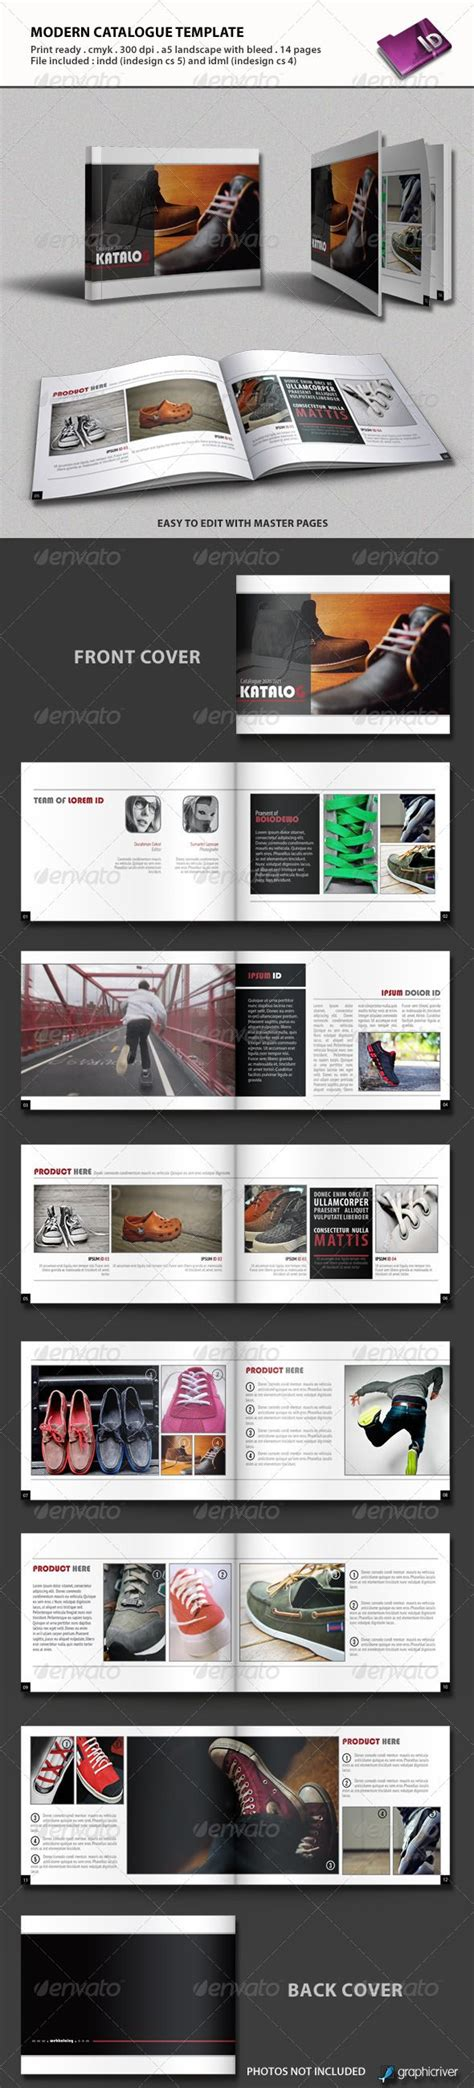 modern catalogue template  images indesign